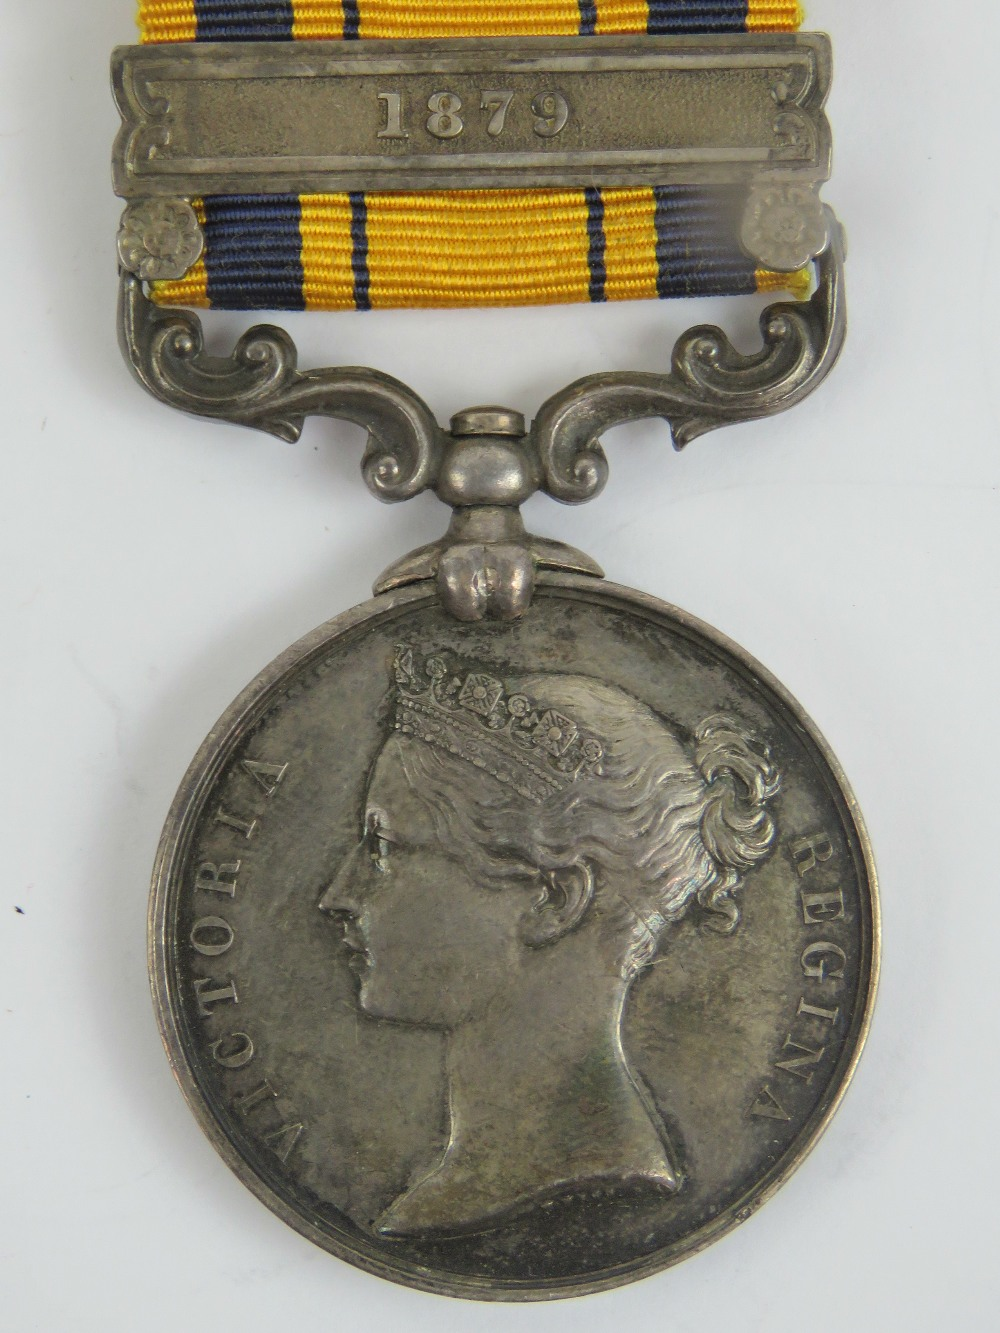 A South African Zulu war medal (1880) with ribbon and bar for 1879,